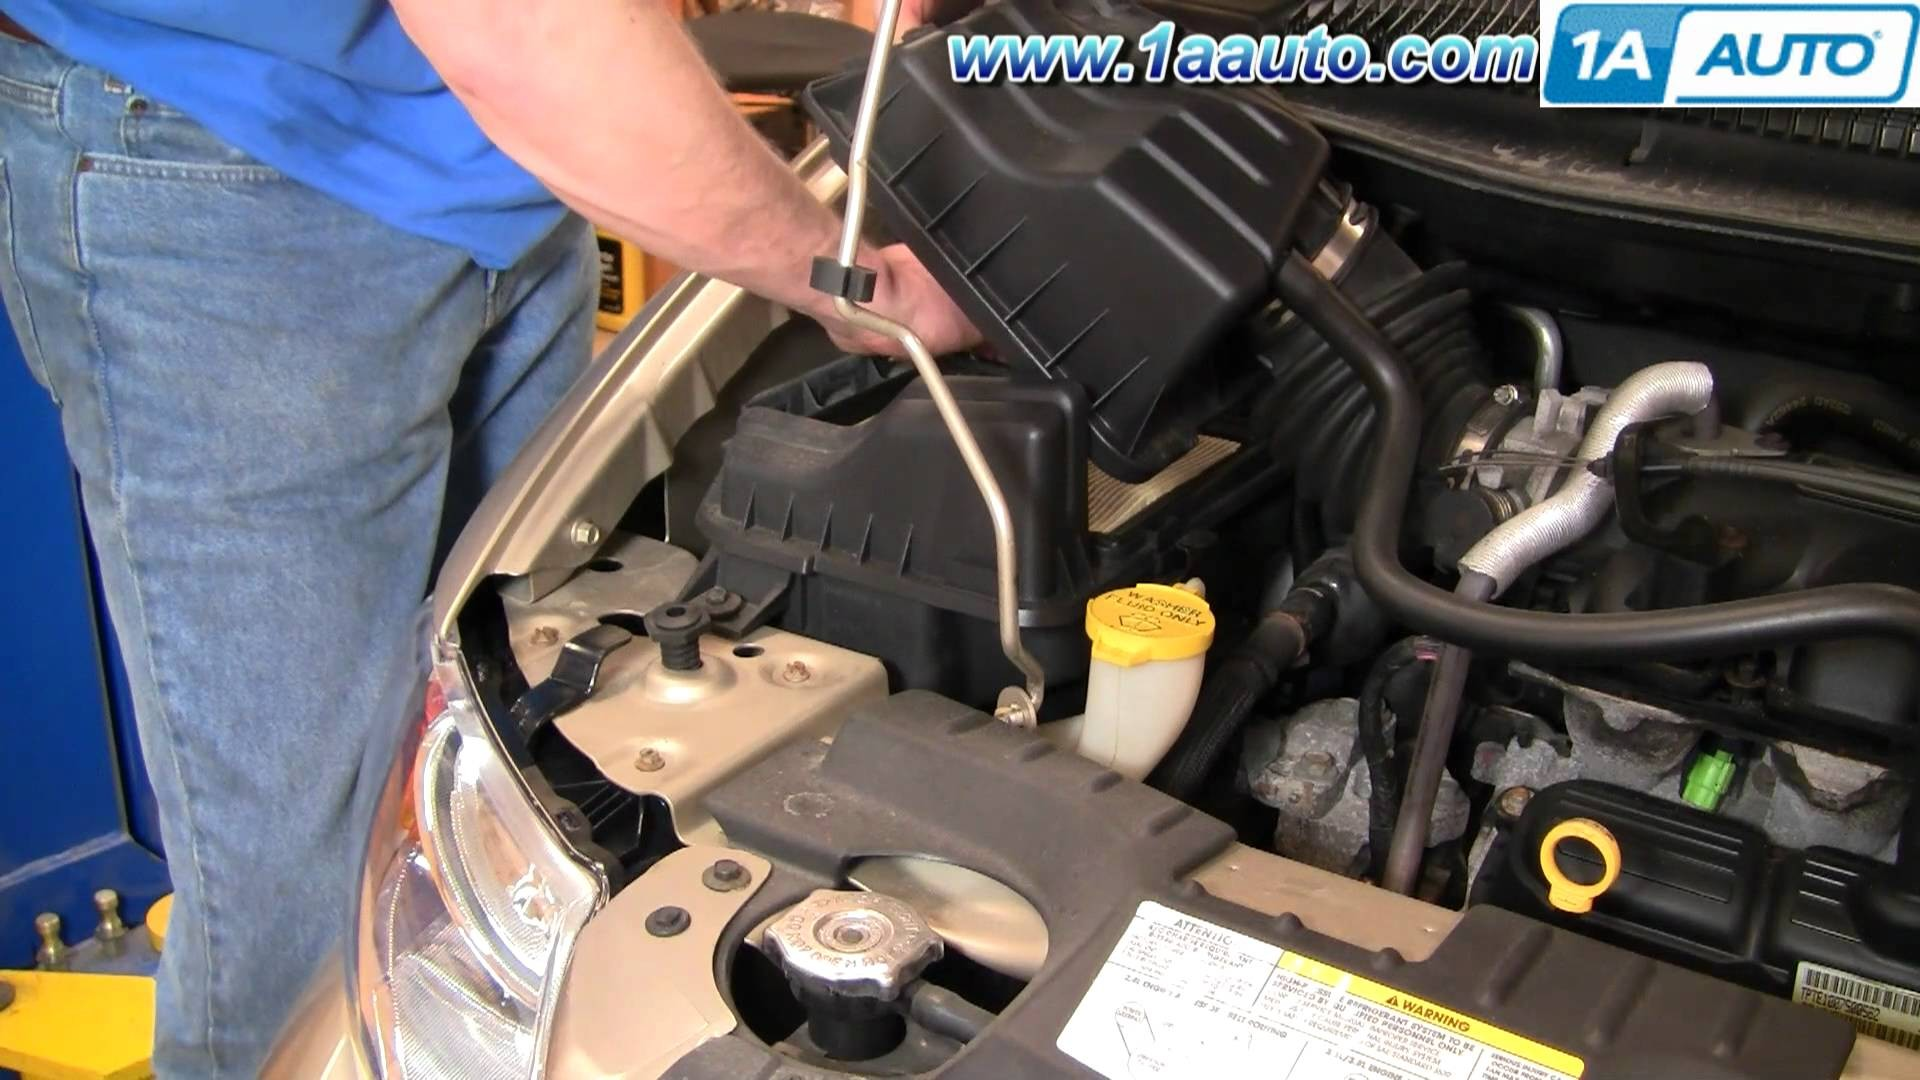 2005 Chrysler town and Country Engine Diagram How to Install Replace Air  Filter Chrysler town and